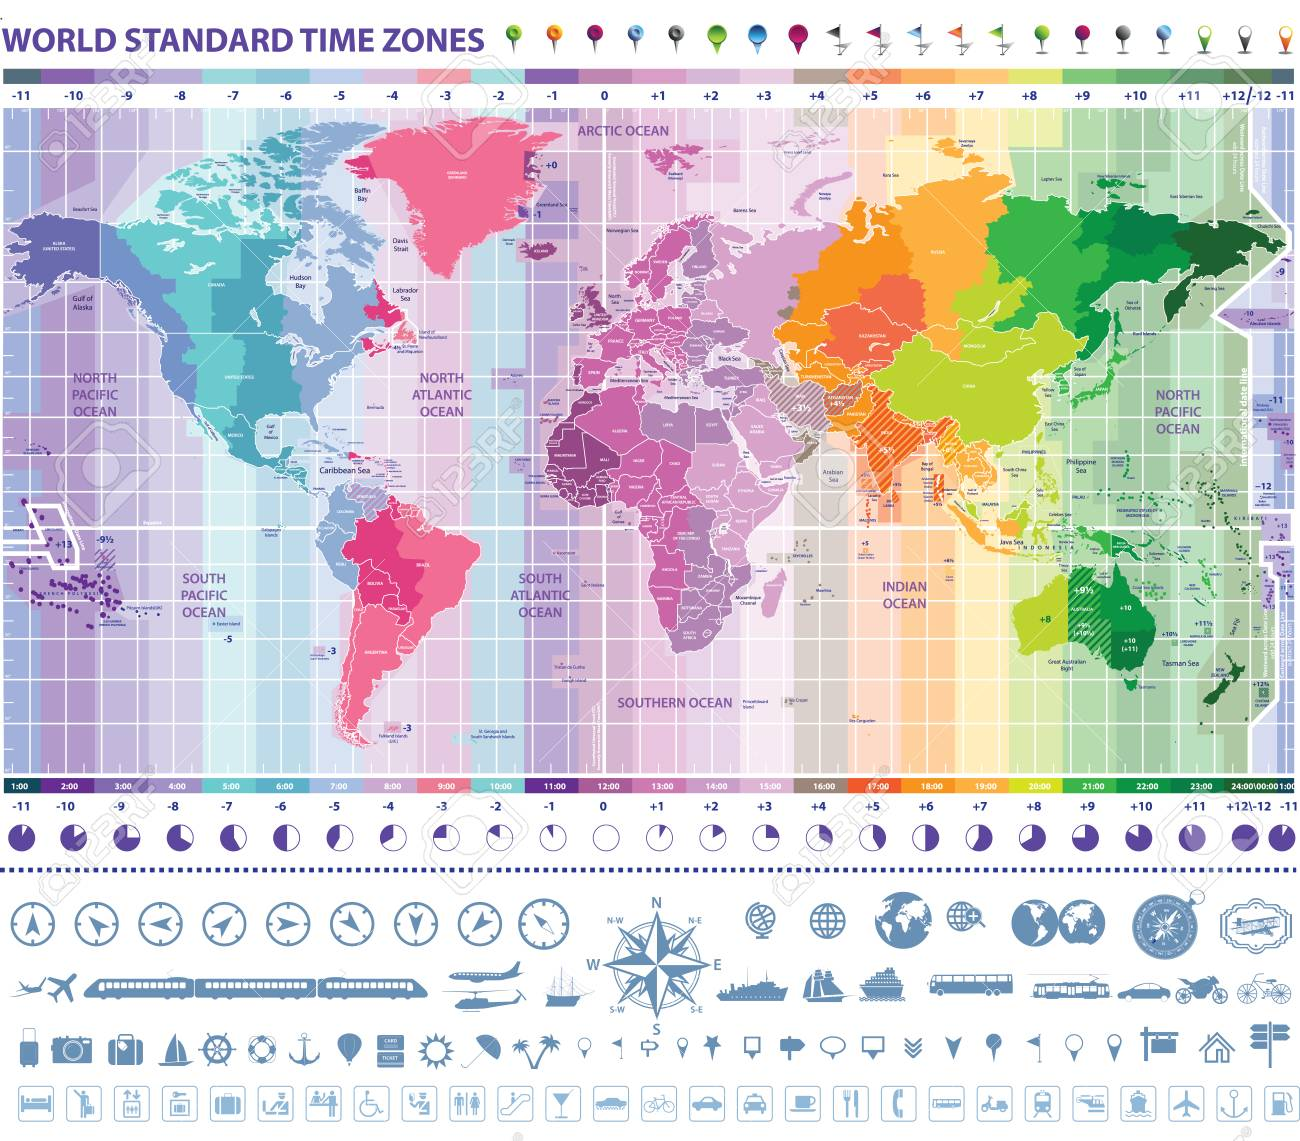 World Standard Time Zones Map With Clocks Navigation And Travel